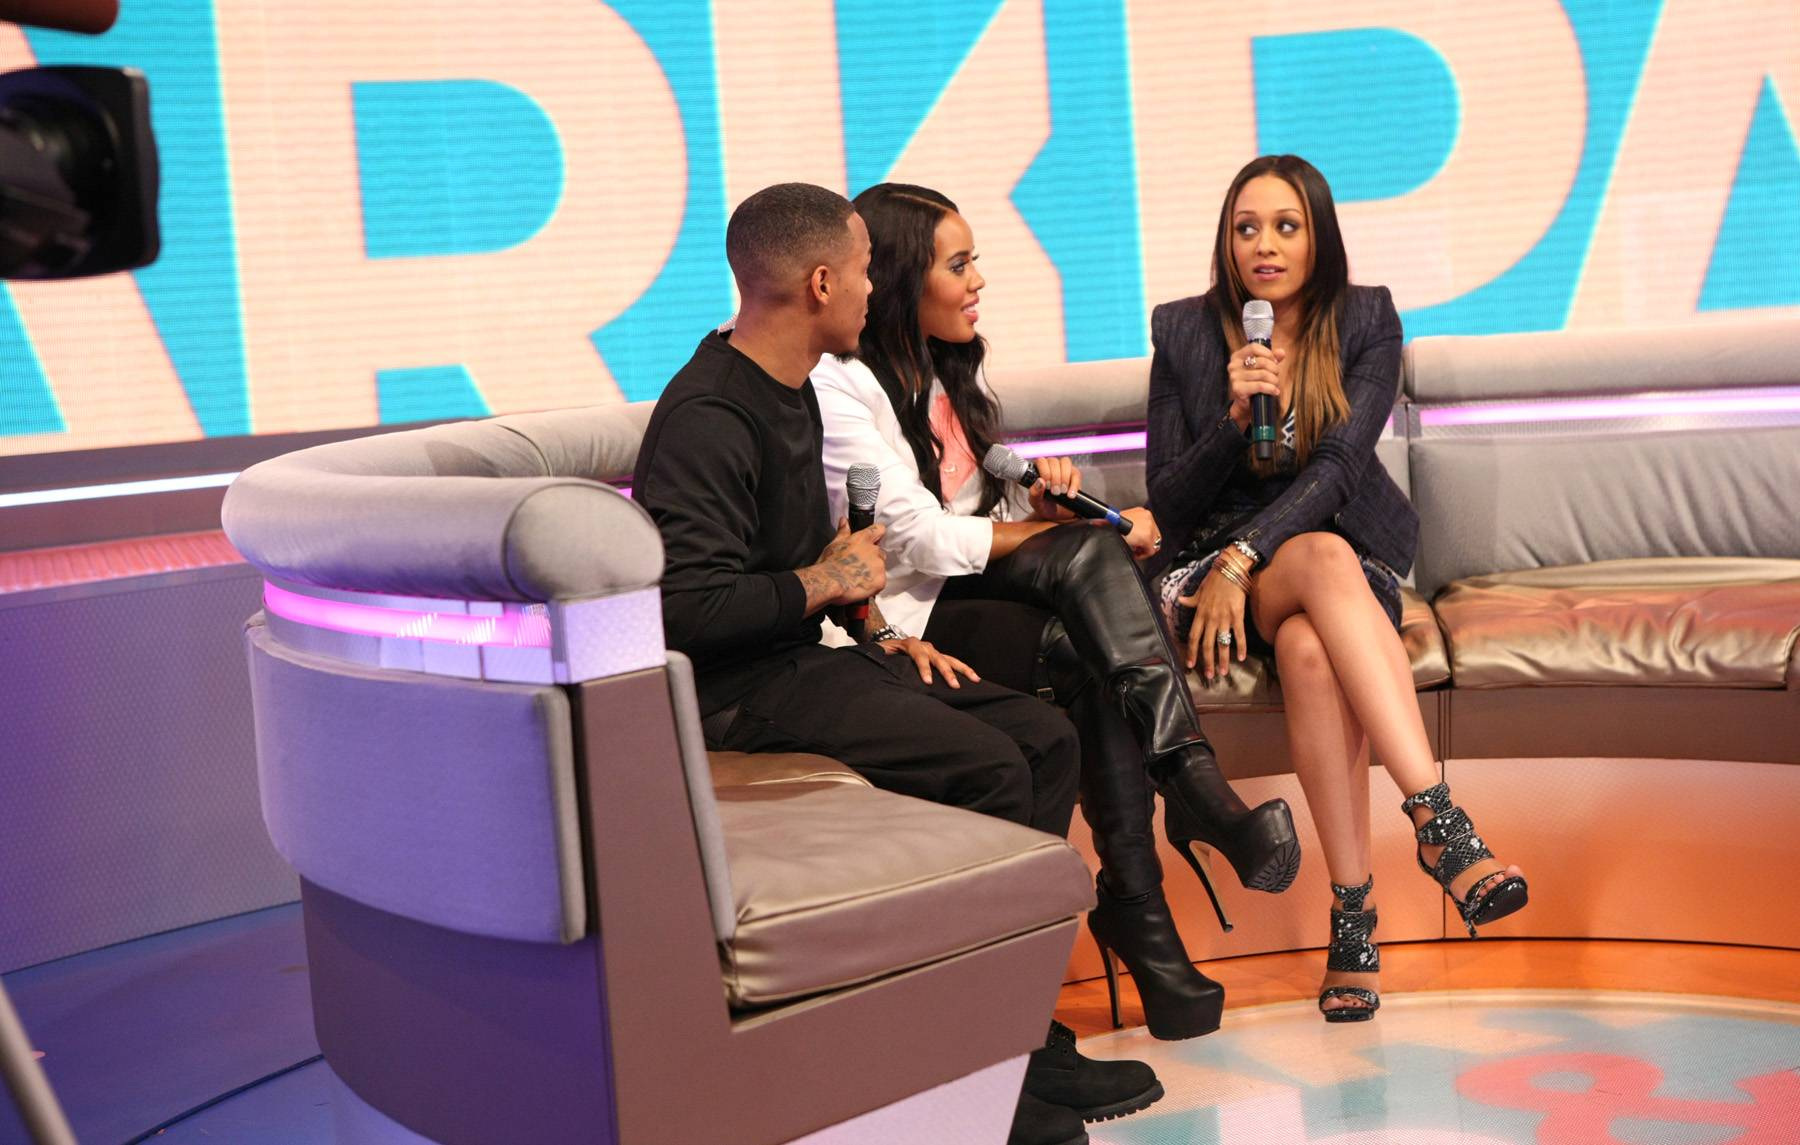 Let Me Think - Bow Wow and Angela Simmons relax as actress Tia Mowry-Hardrict thinks about a question.(Photo: Bennett Raglin/BET/Getty Images for BET)